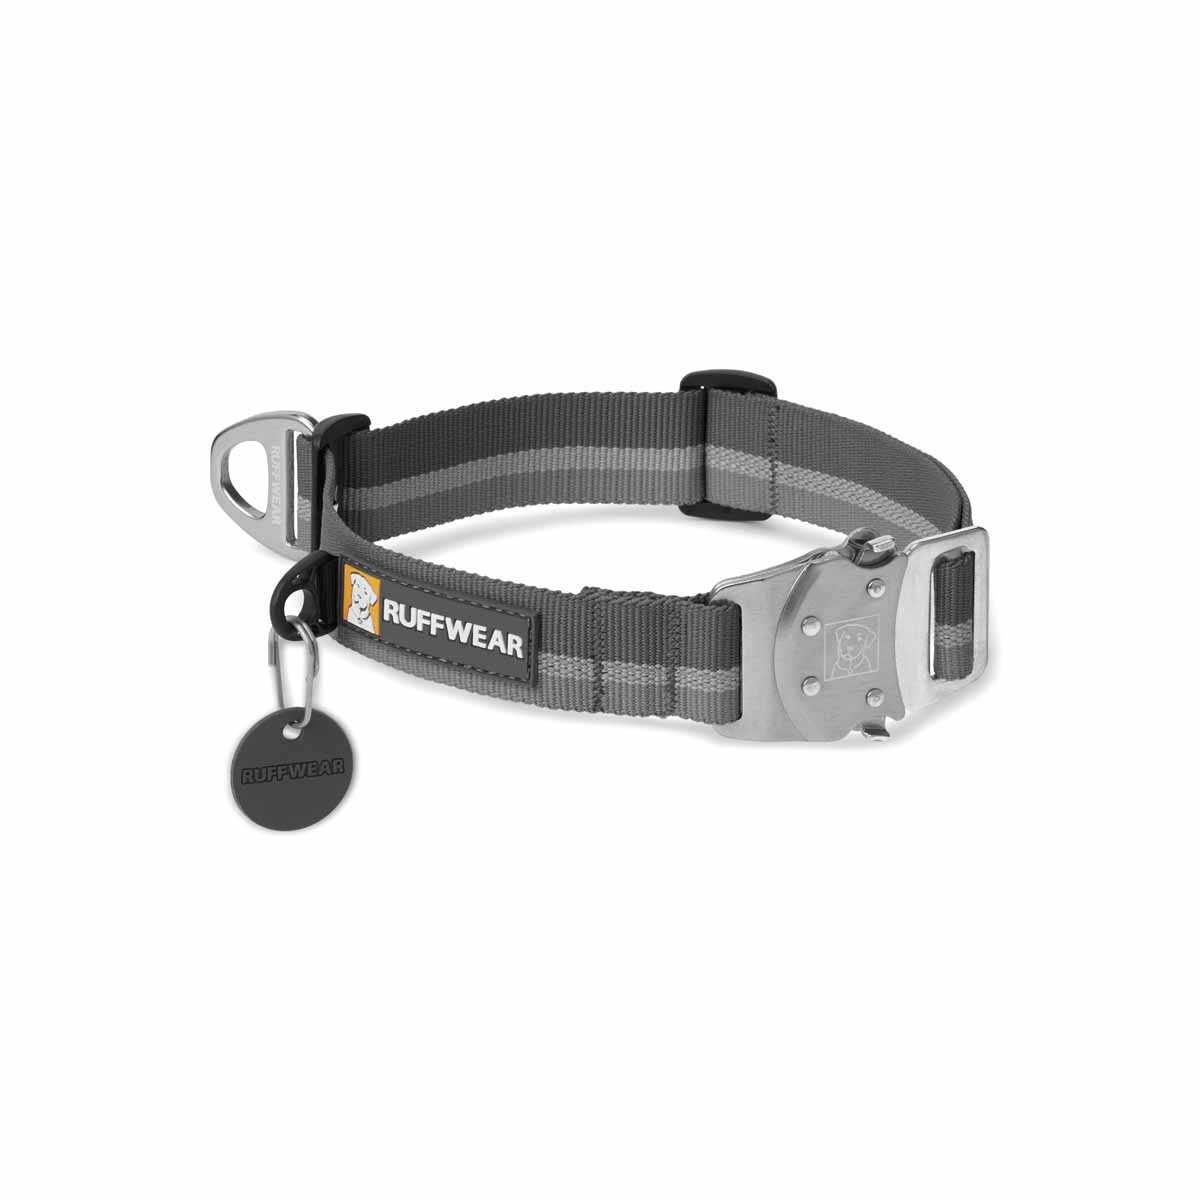 Top Rope Dog Collar by RuffWear - Twilight Gray